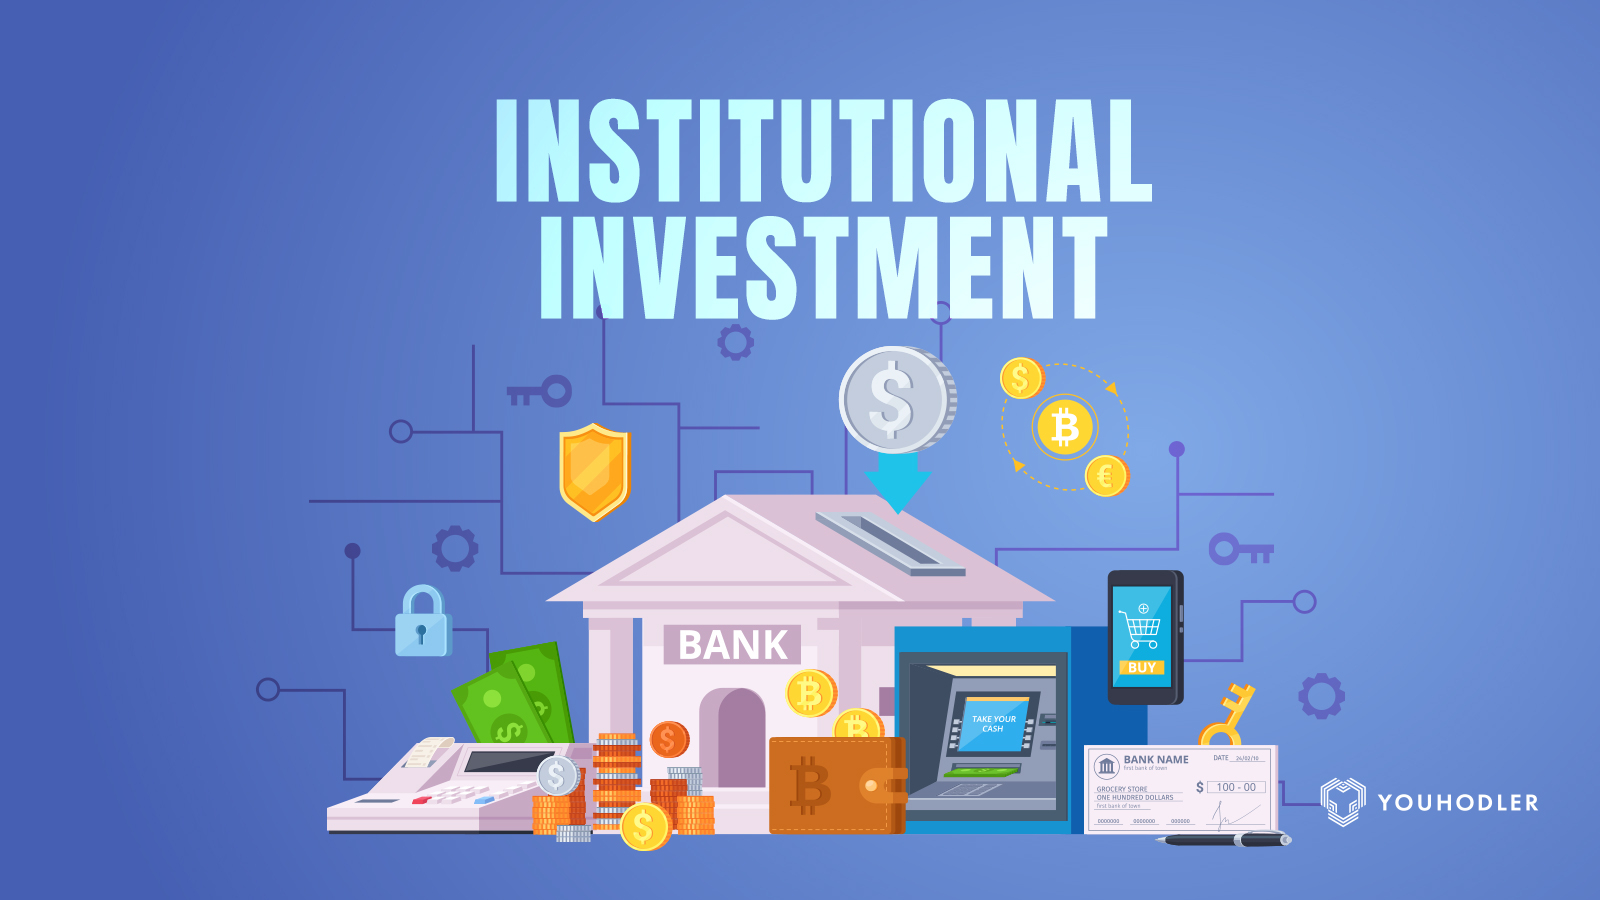 A picture of a bank signifying institutinoal investments entering the bitcoin market